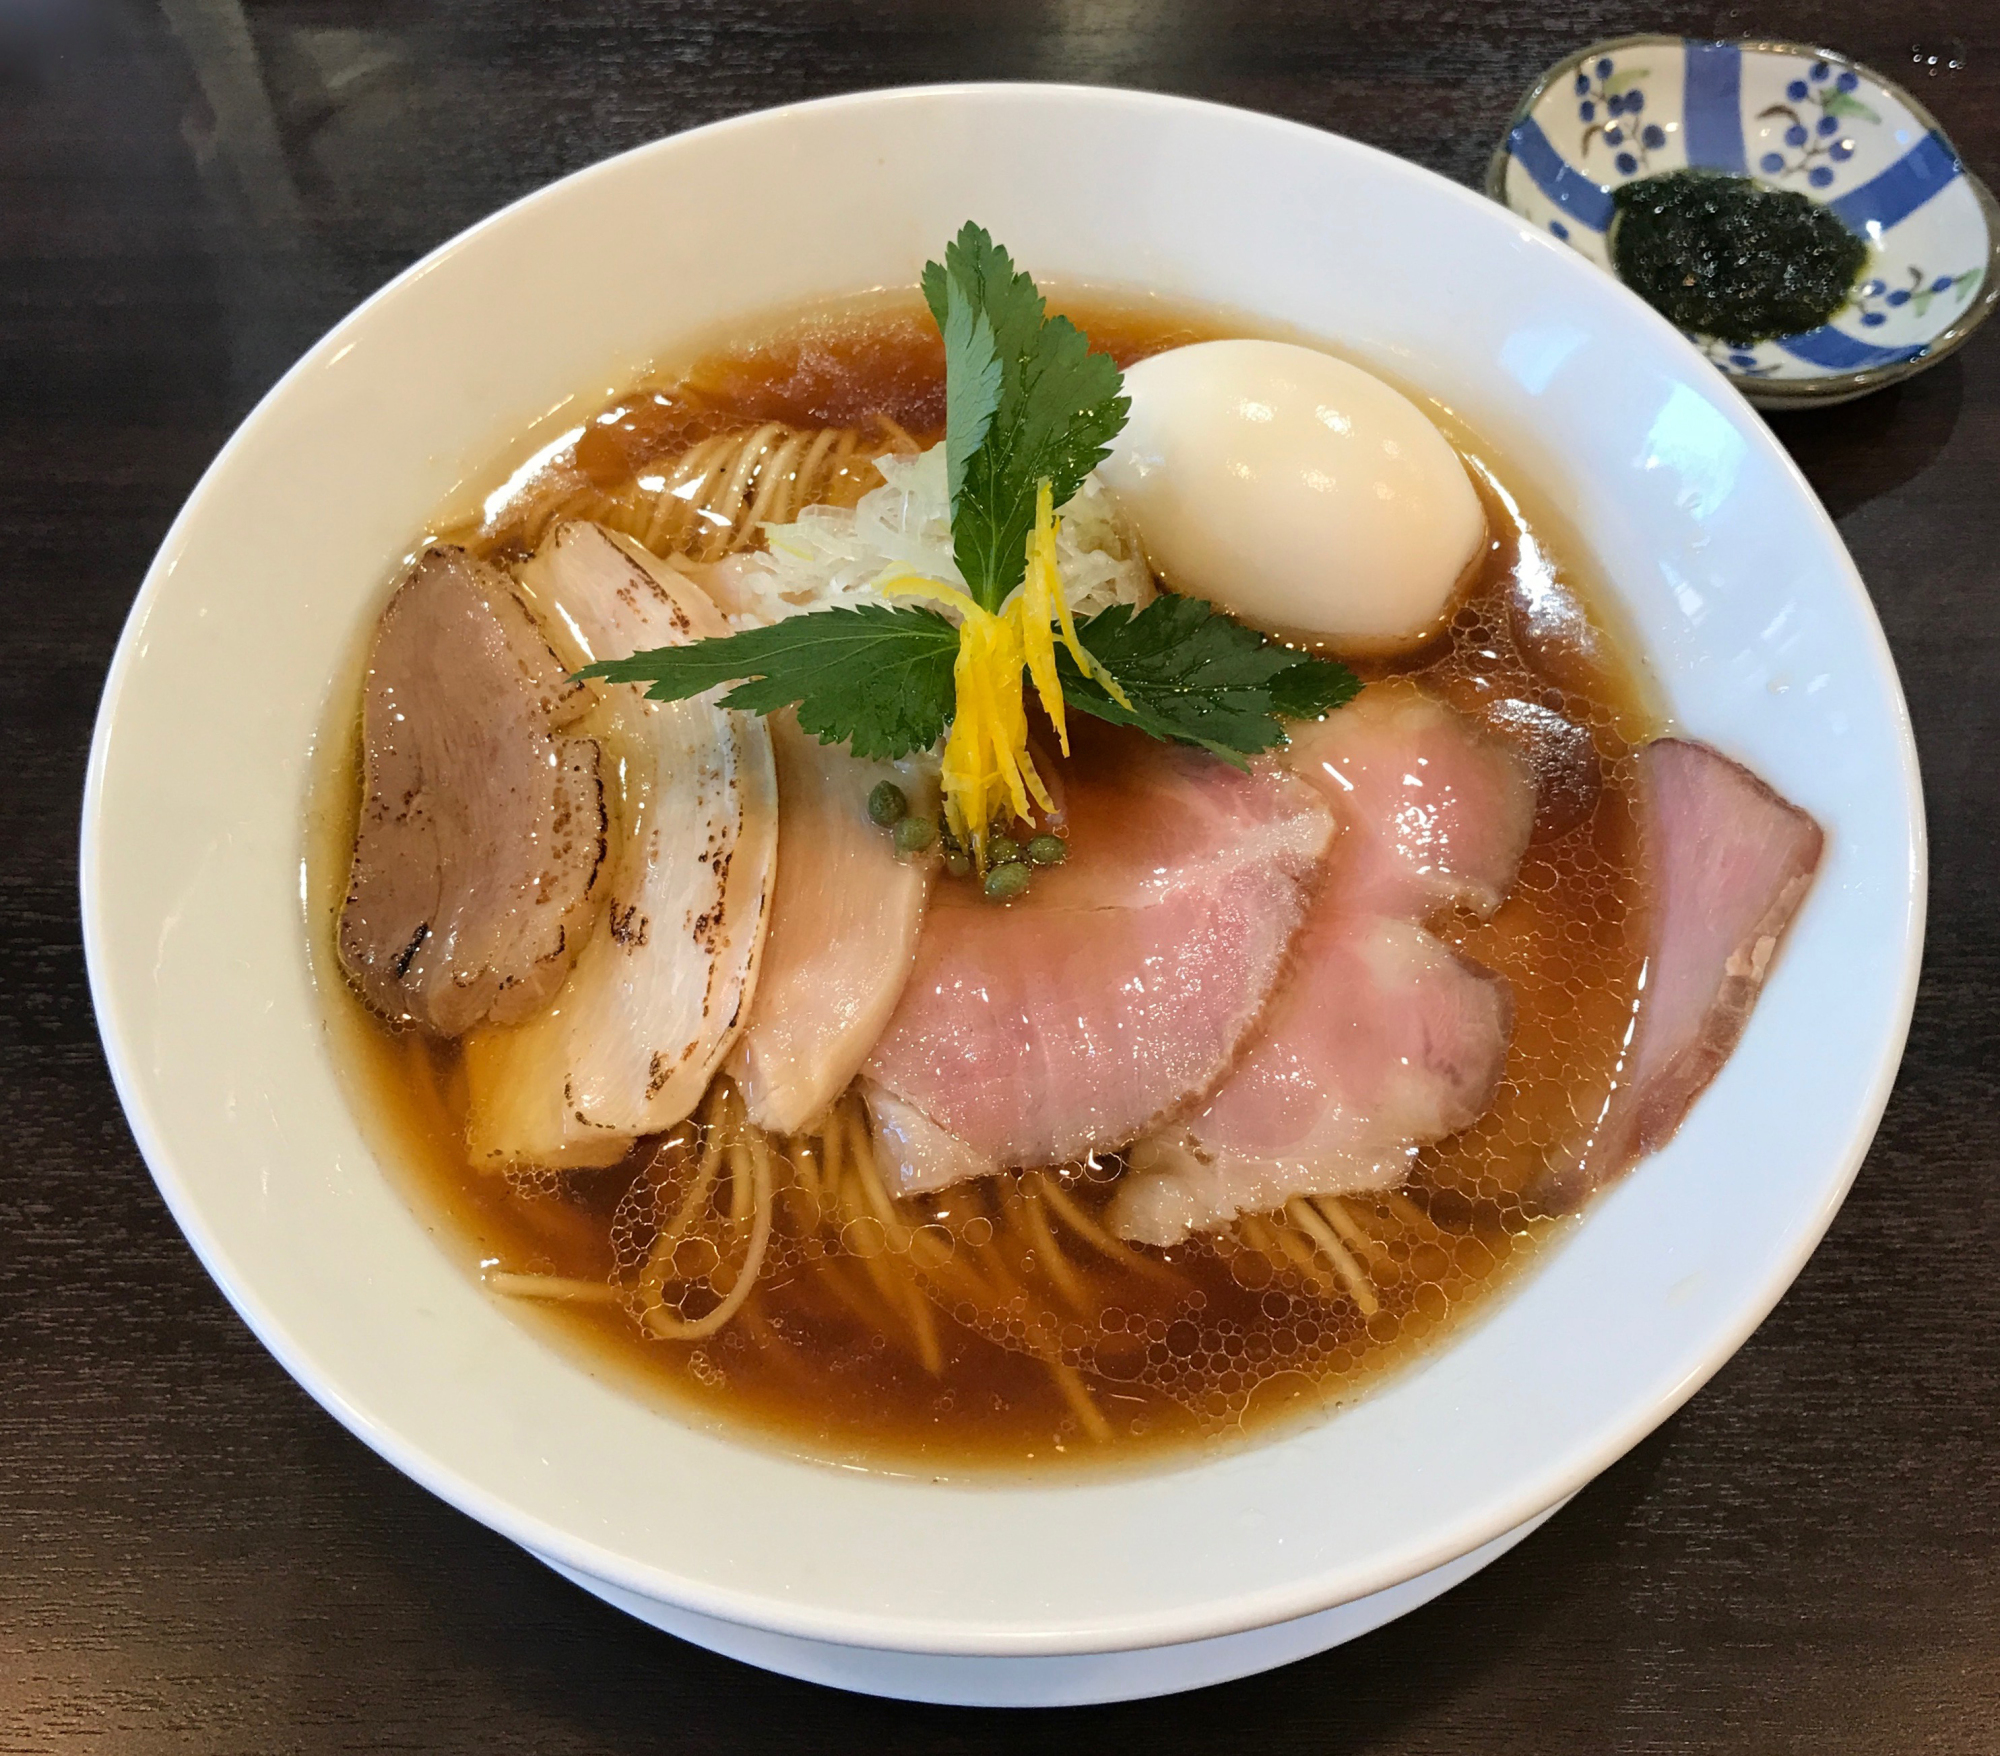 Triple crown: At Men Labo Hiro, the noodles come topped with slices of pork, chicken and duck. | ROBBIE SWINNERTON